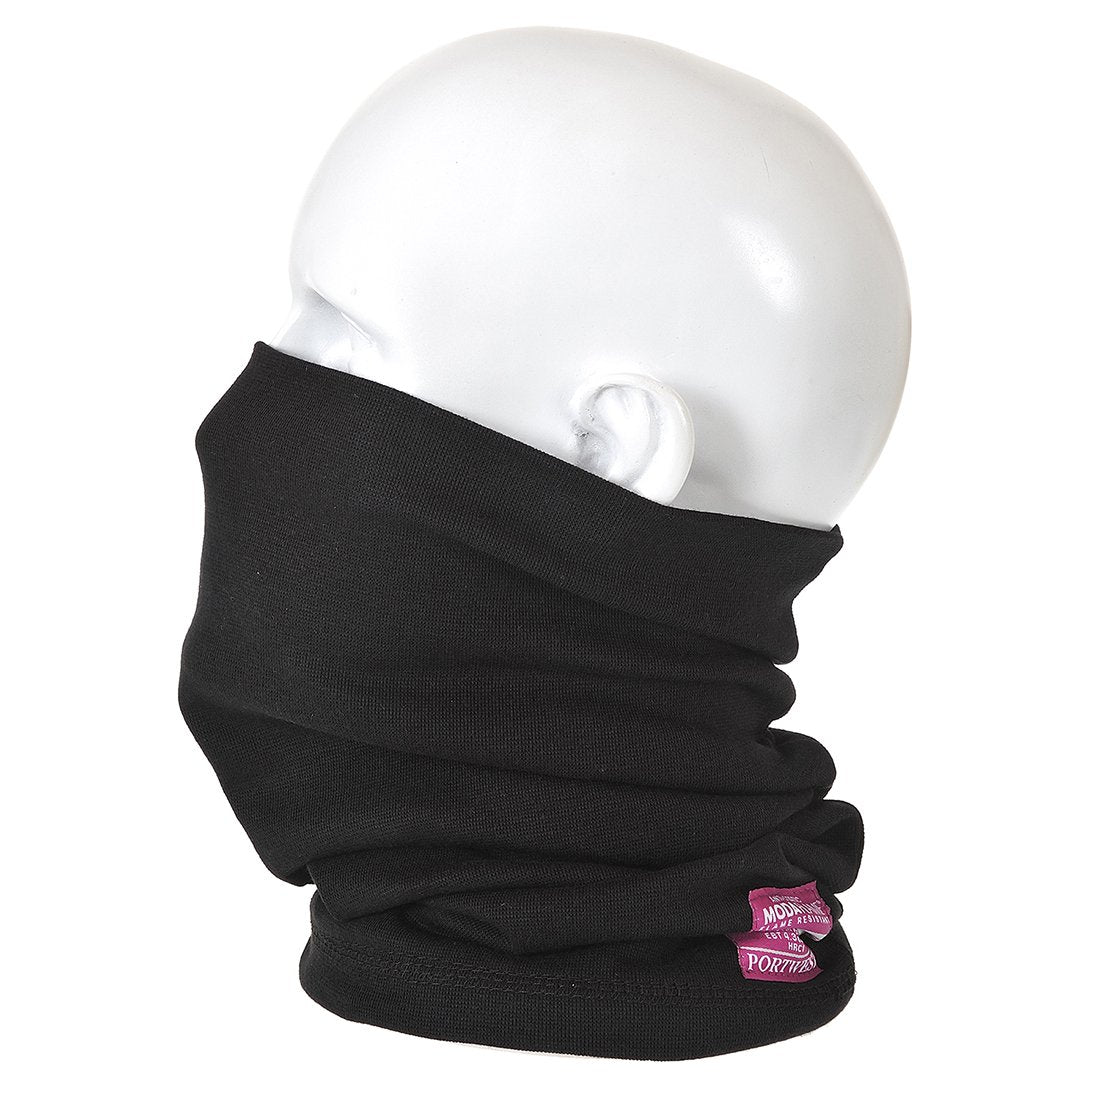 Flame Resistant Antistatic Neck Tube